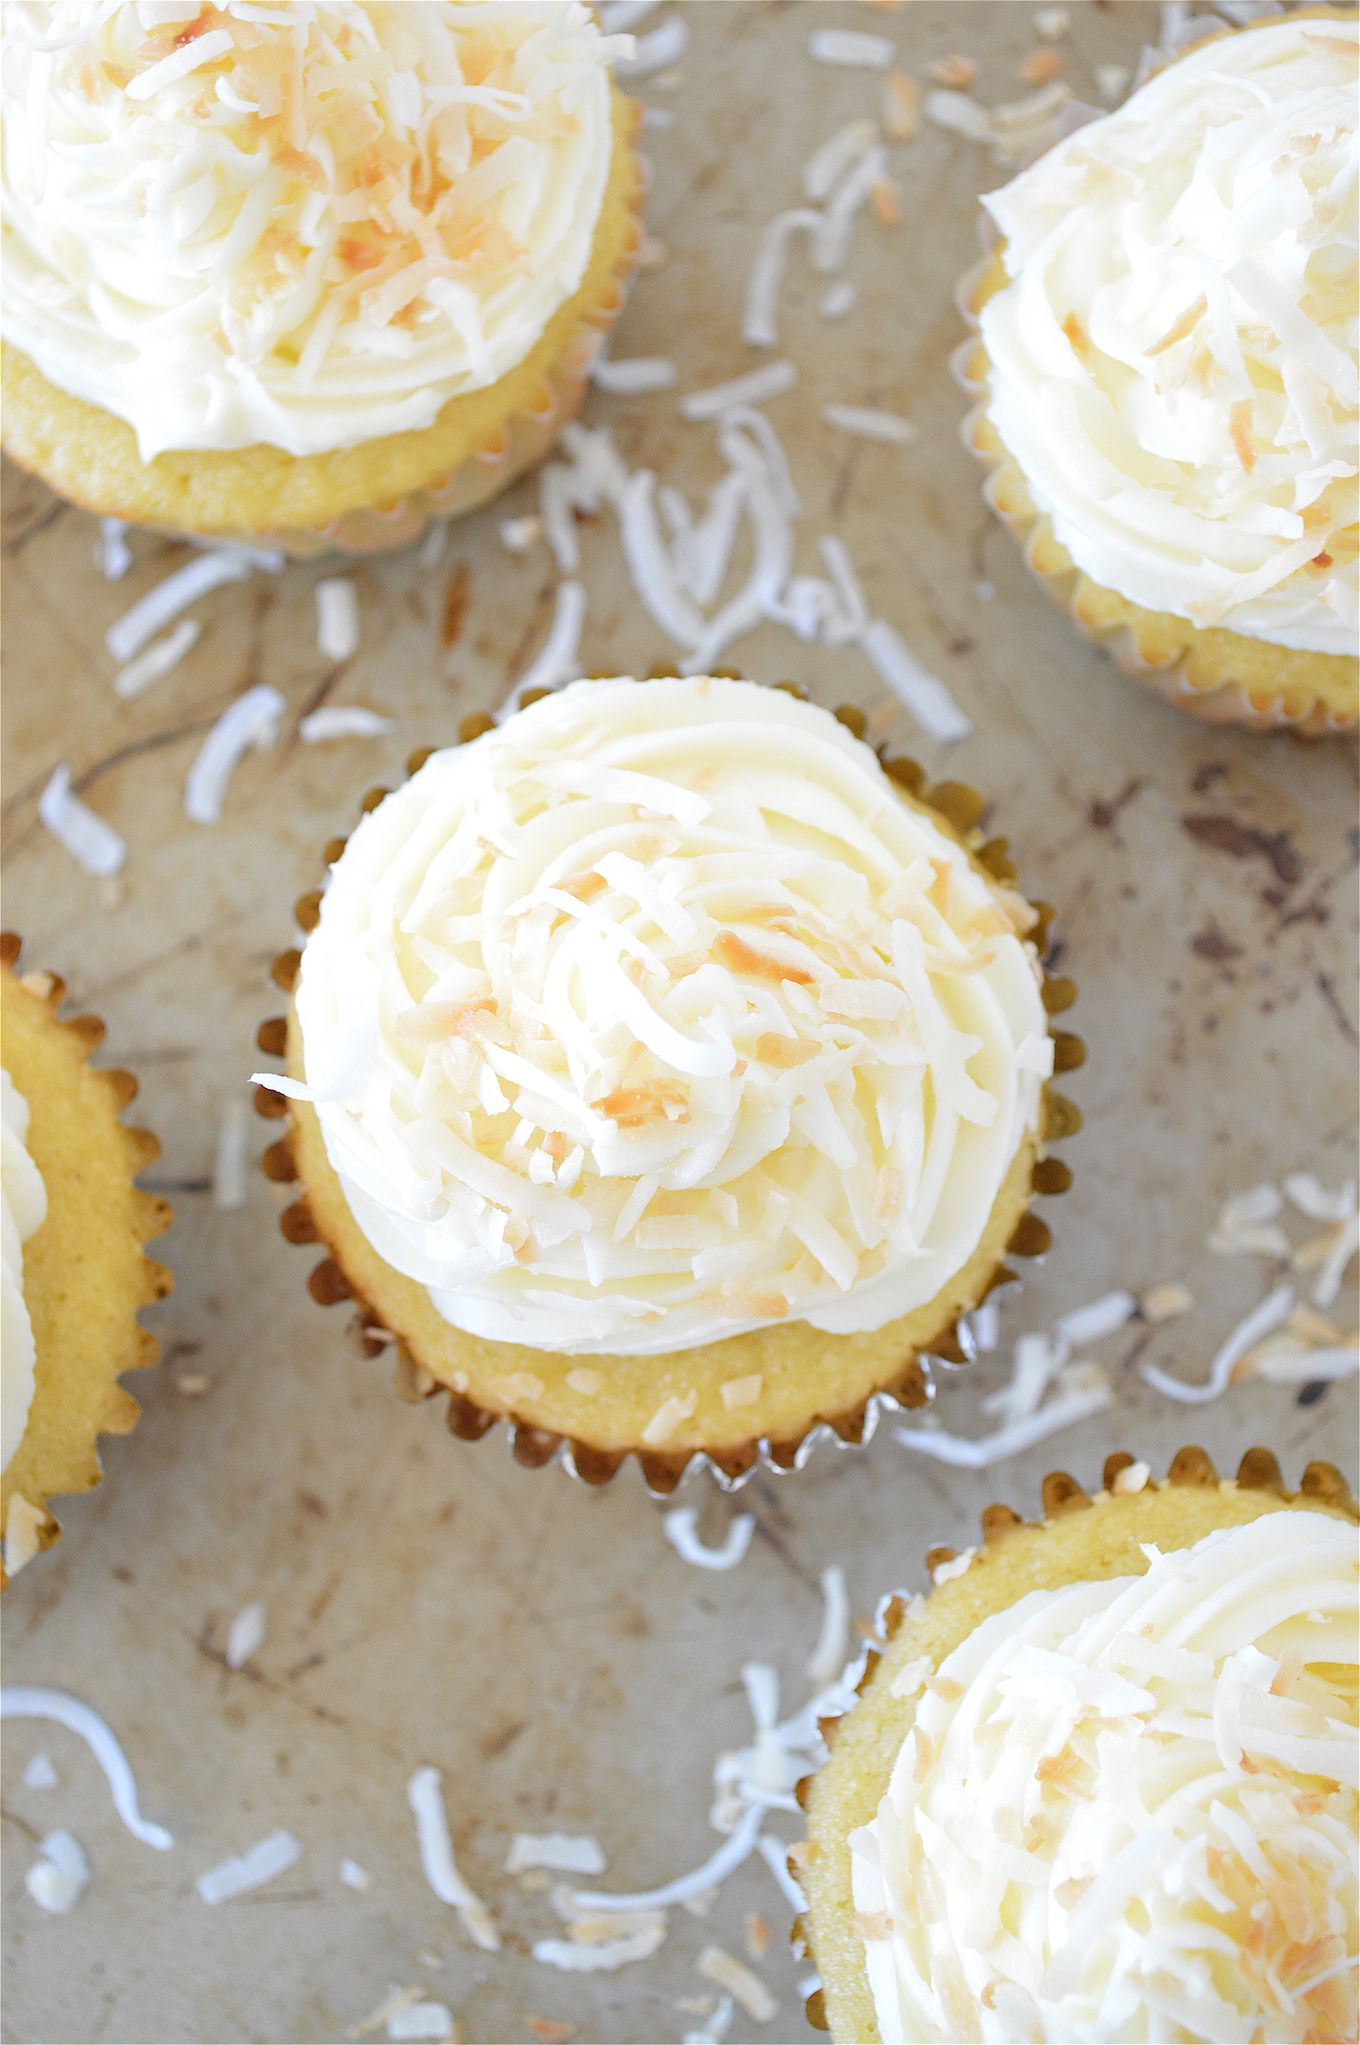 Gluten-Free Coconut Cream Pie Cupcakes - super moist, gluten-free, vanilla pudding stuffed cupcakes made with coconut flour AND topped with a vanilla and coconut flavored frosting!